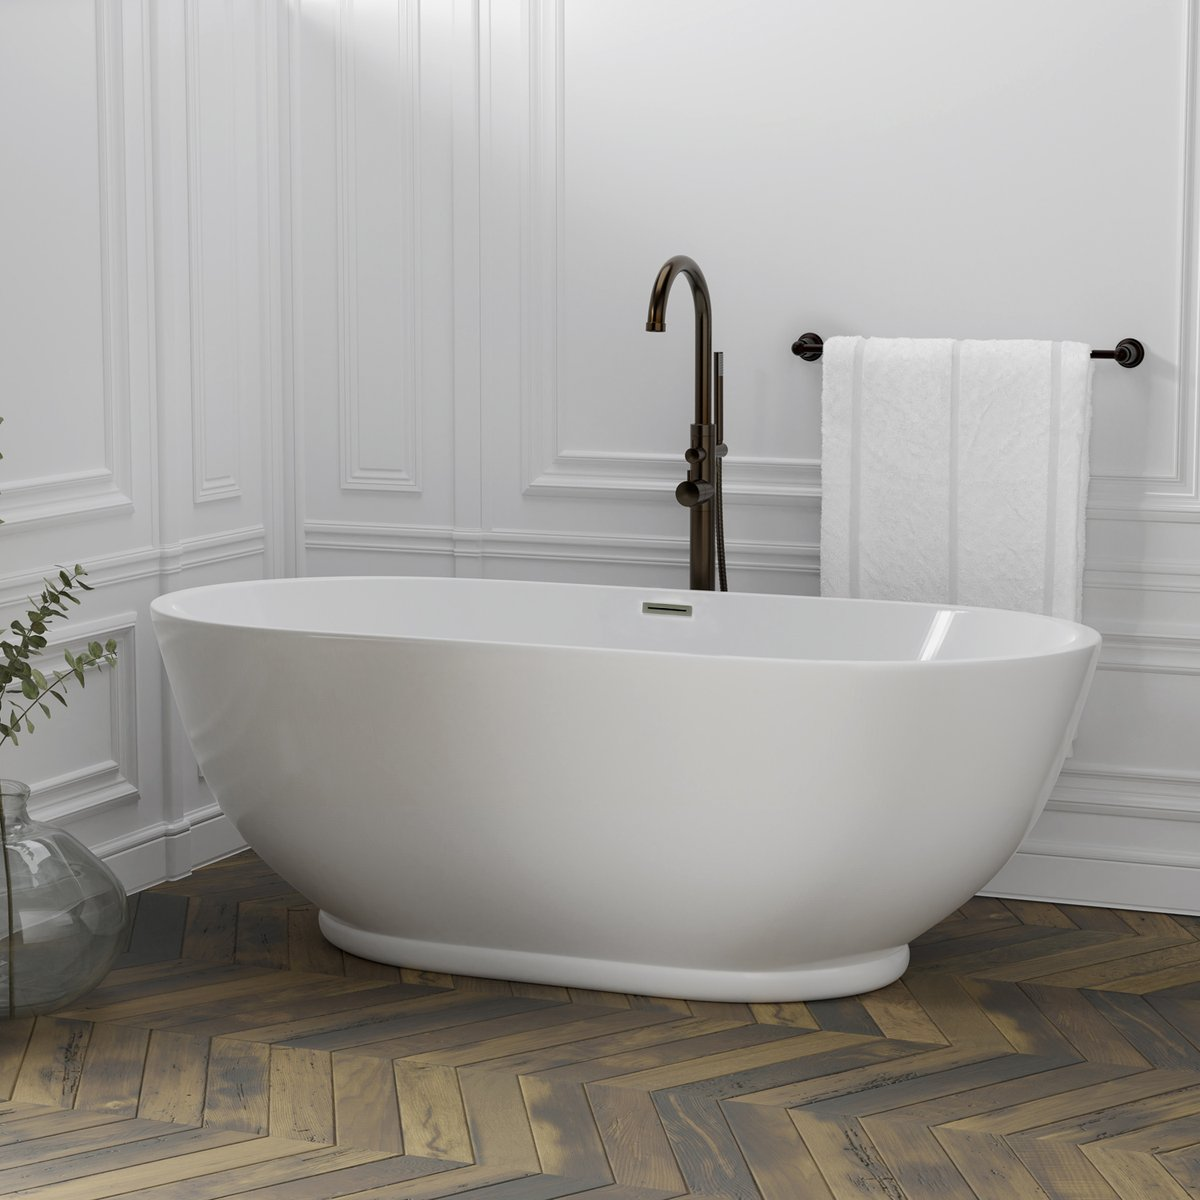 Our double-ended Radcliff features a modern design in easy-care acrylic. Please choose from our array of vintage tub fillers to complete your ensemble.    #SundayThoughts #interiordesign  #moderndesign #homedecor #homedesign #bathroomdesign  #bathroomdecor